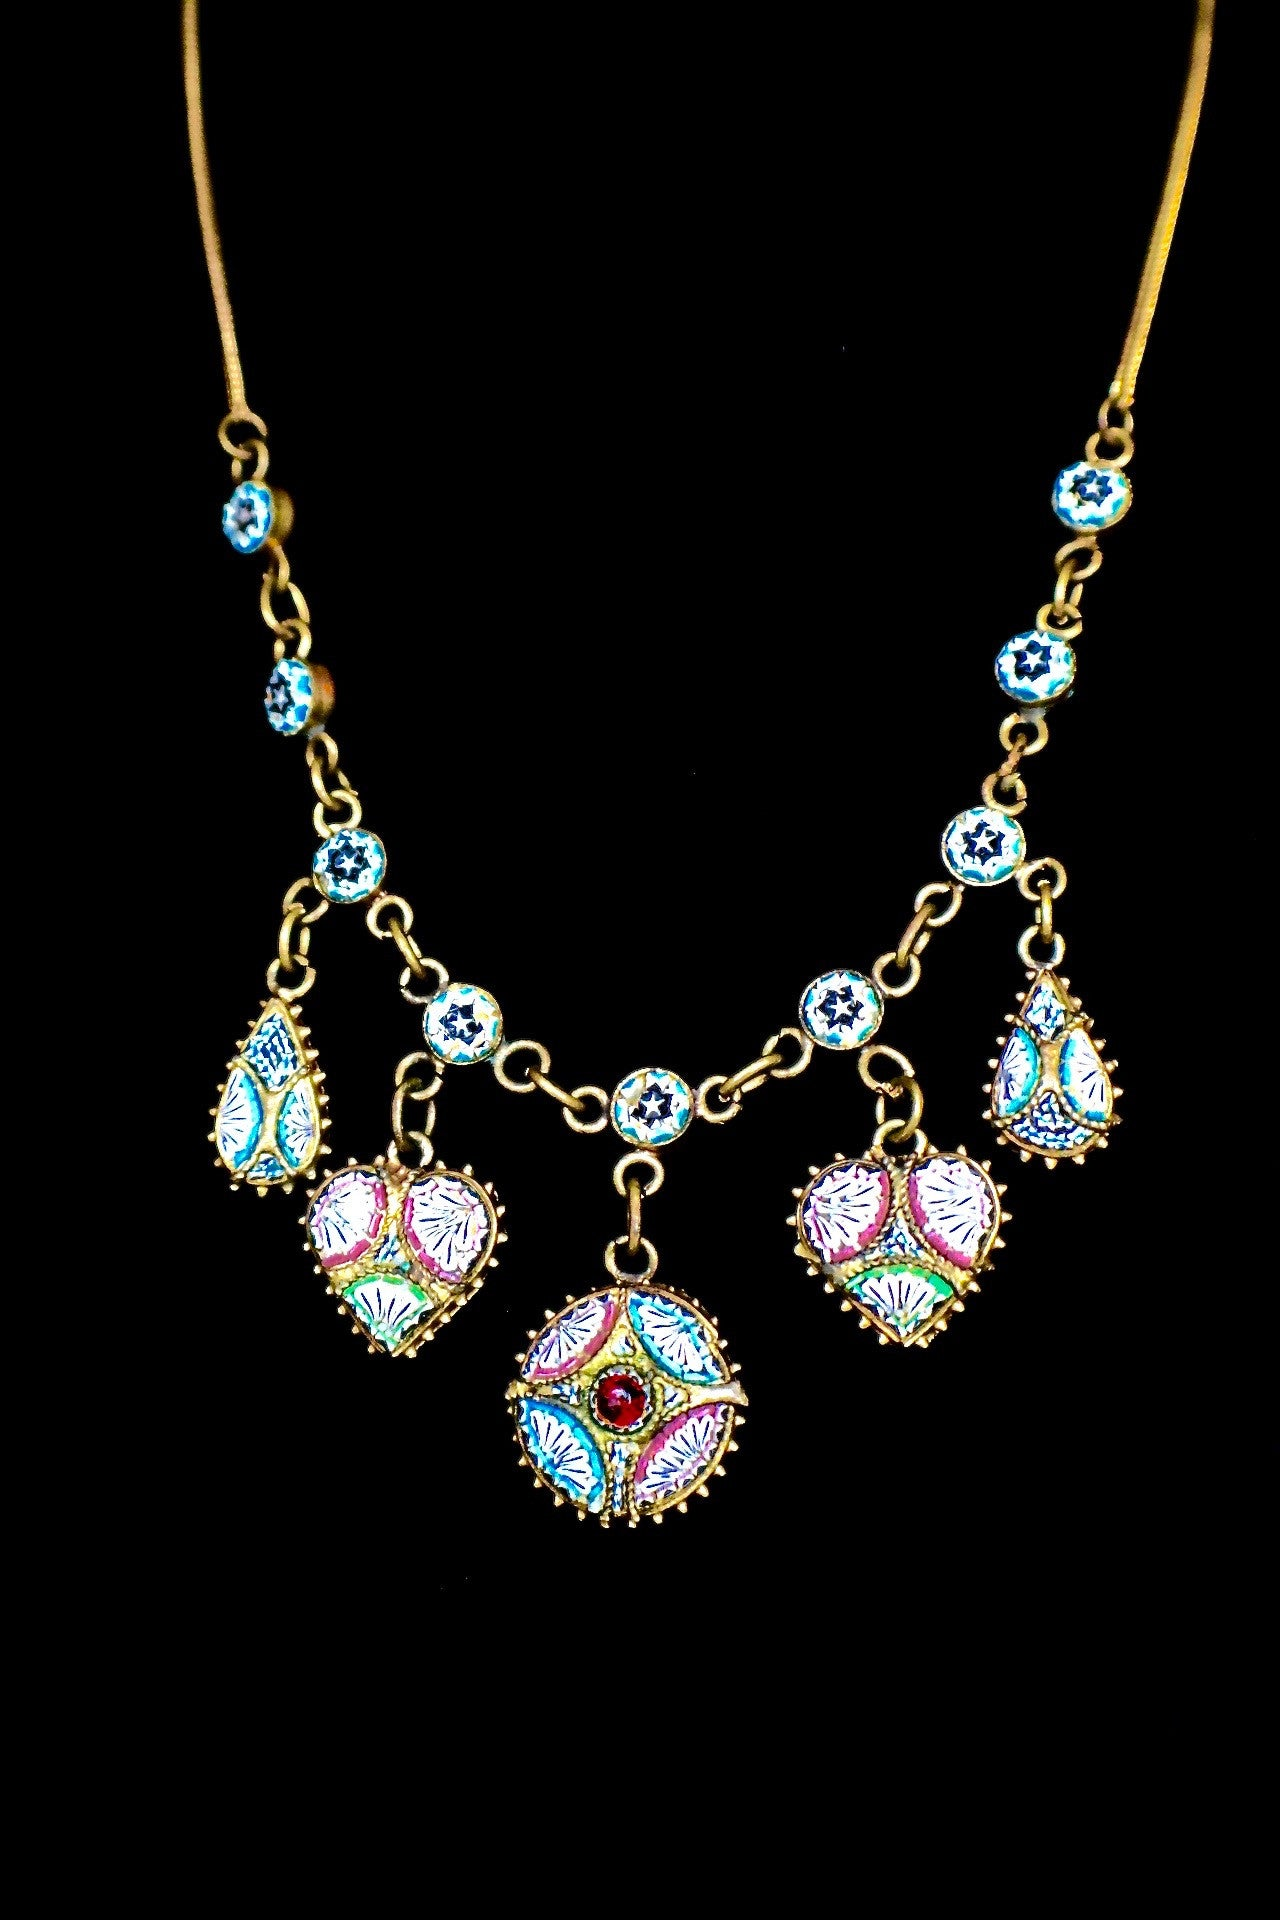 swarovski deco product jandsjewellery crystal by j with s original necklace art jewellery